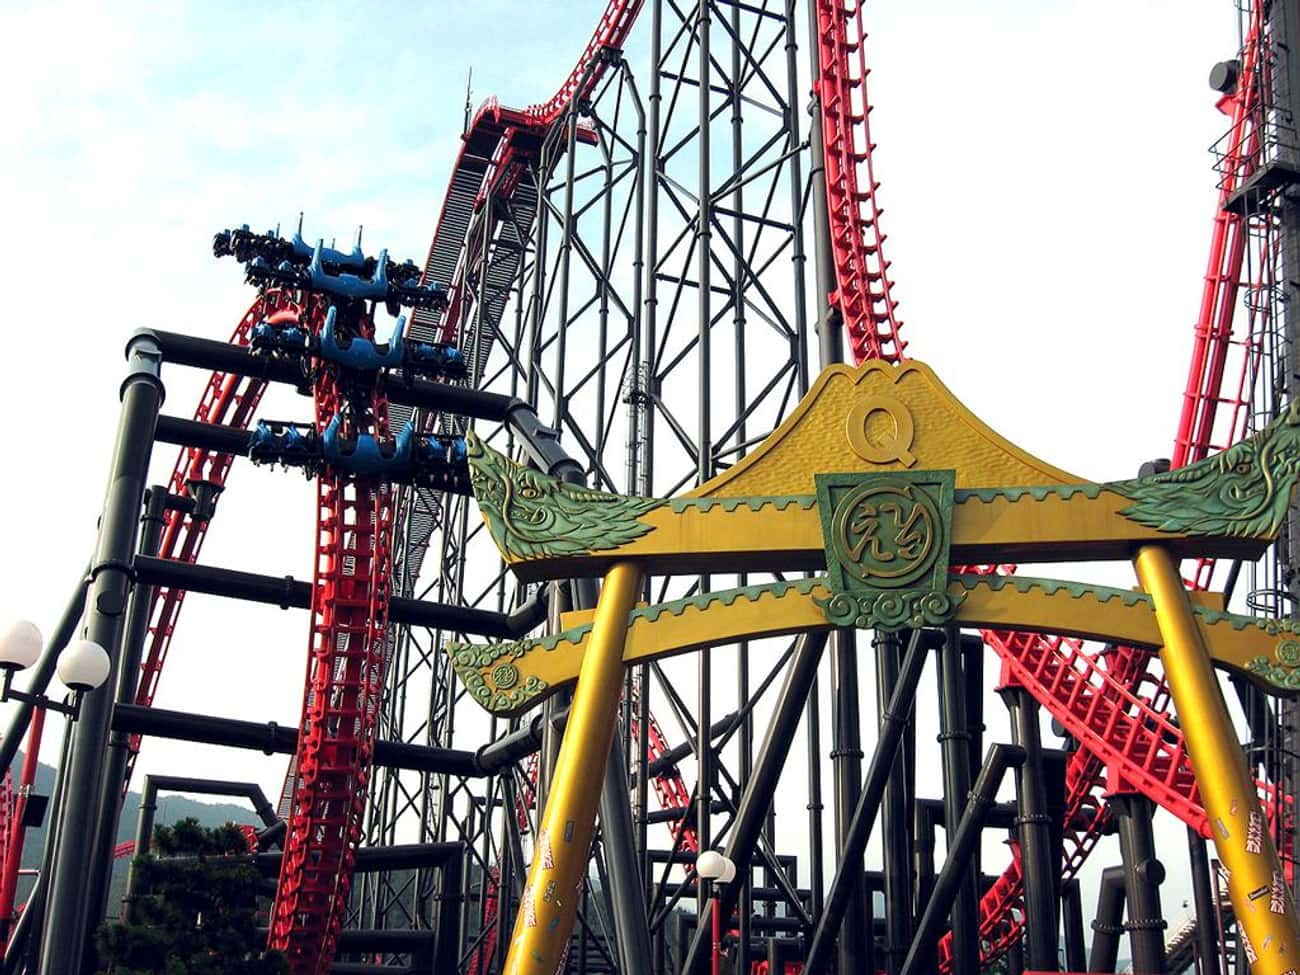 Eejanaika is listed (or ranked) 1 on the list The Best Rides at Fuji-Q Highland